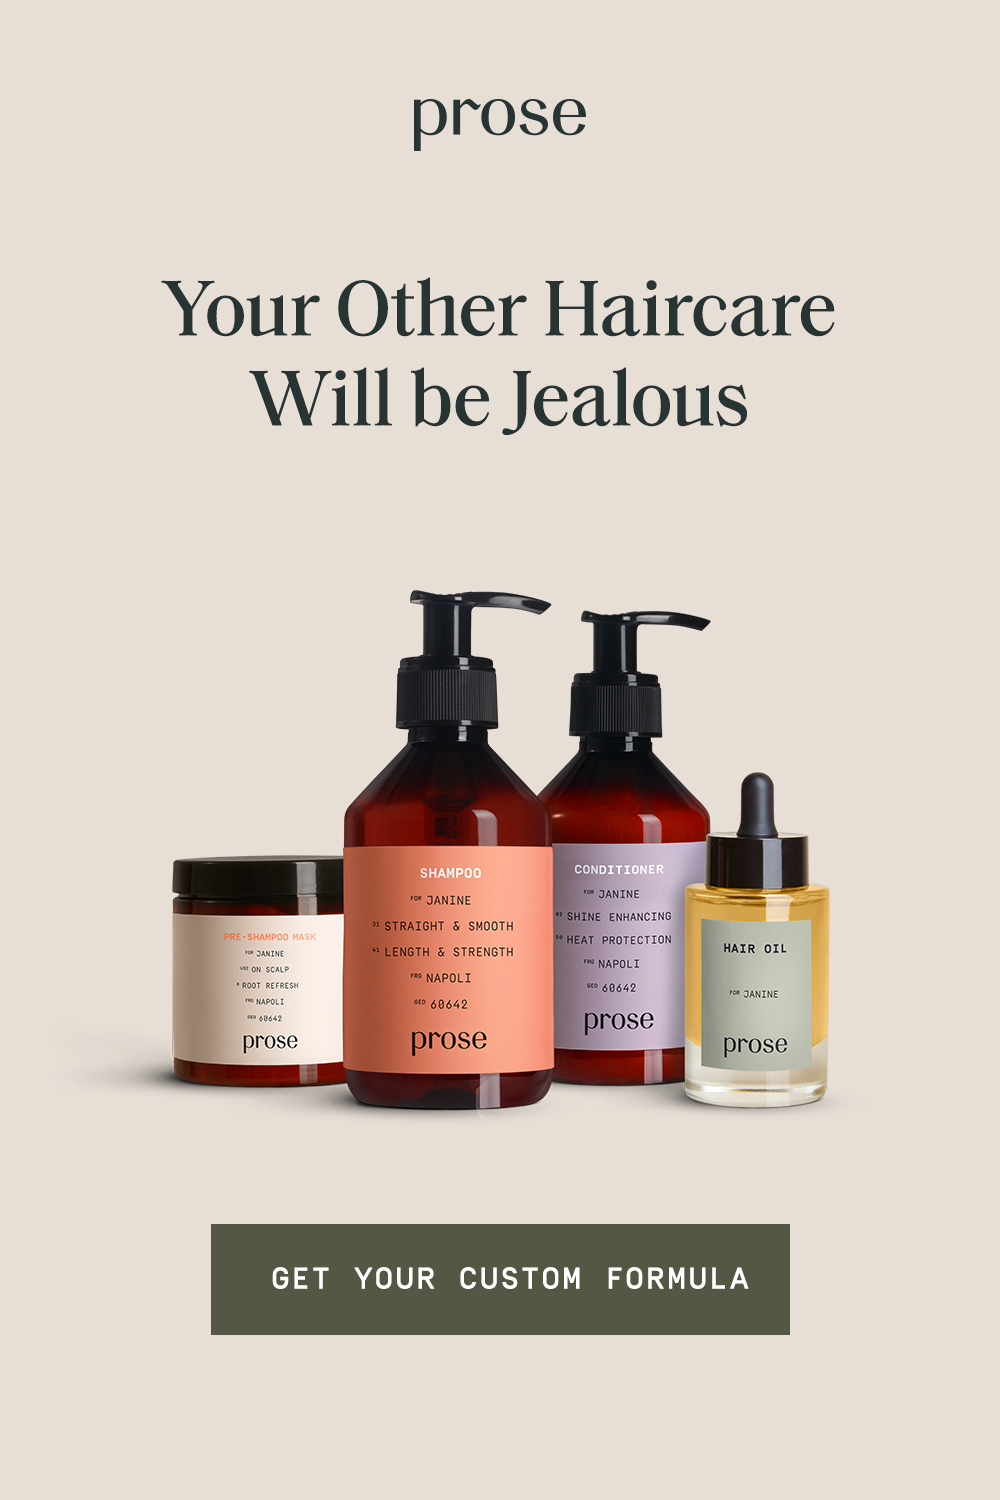 Prose custom hair care products are made to order based on